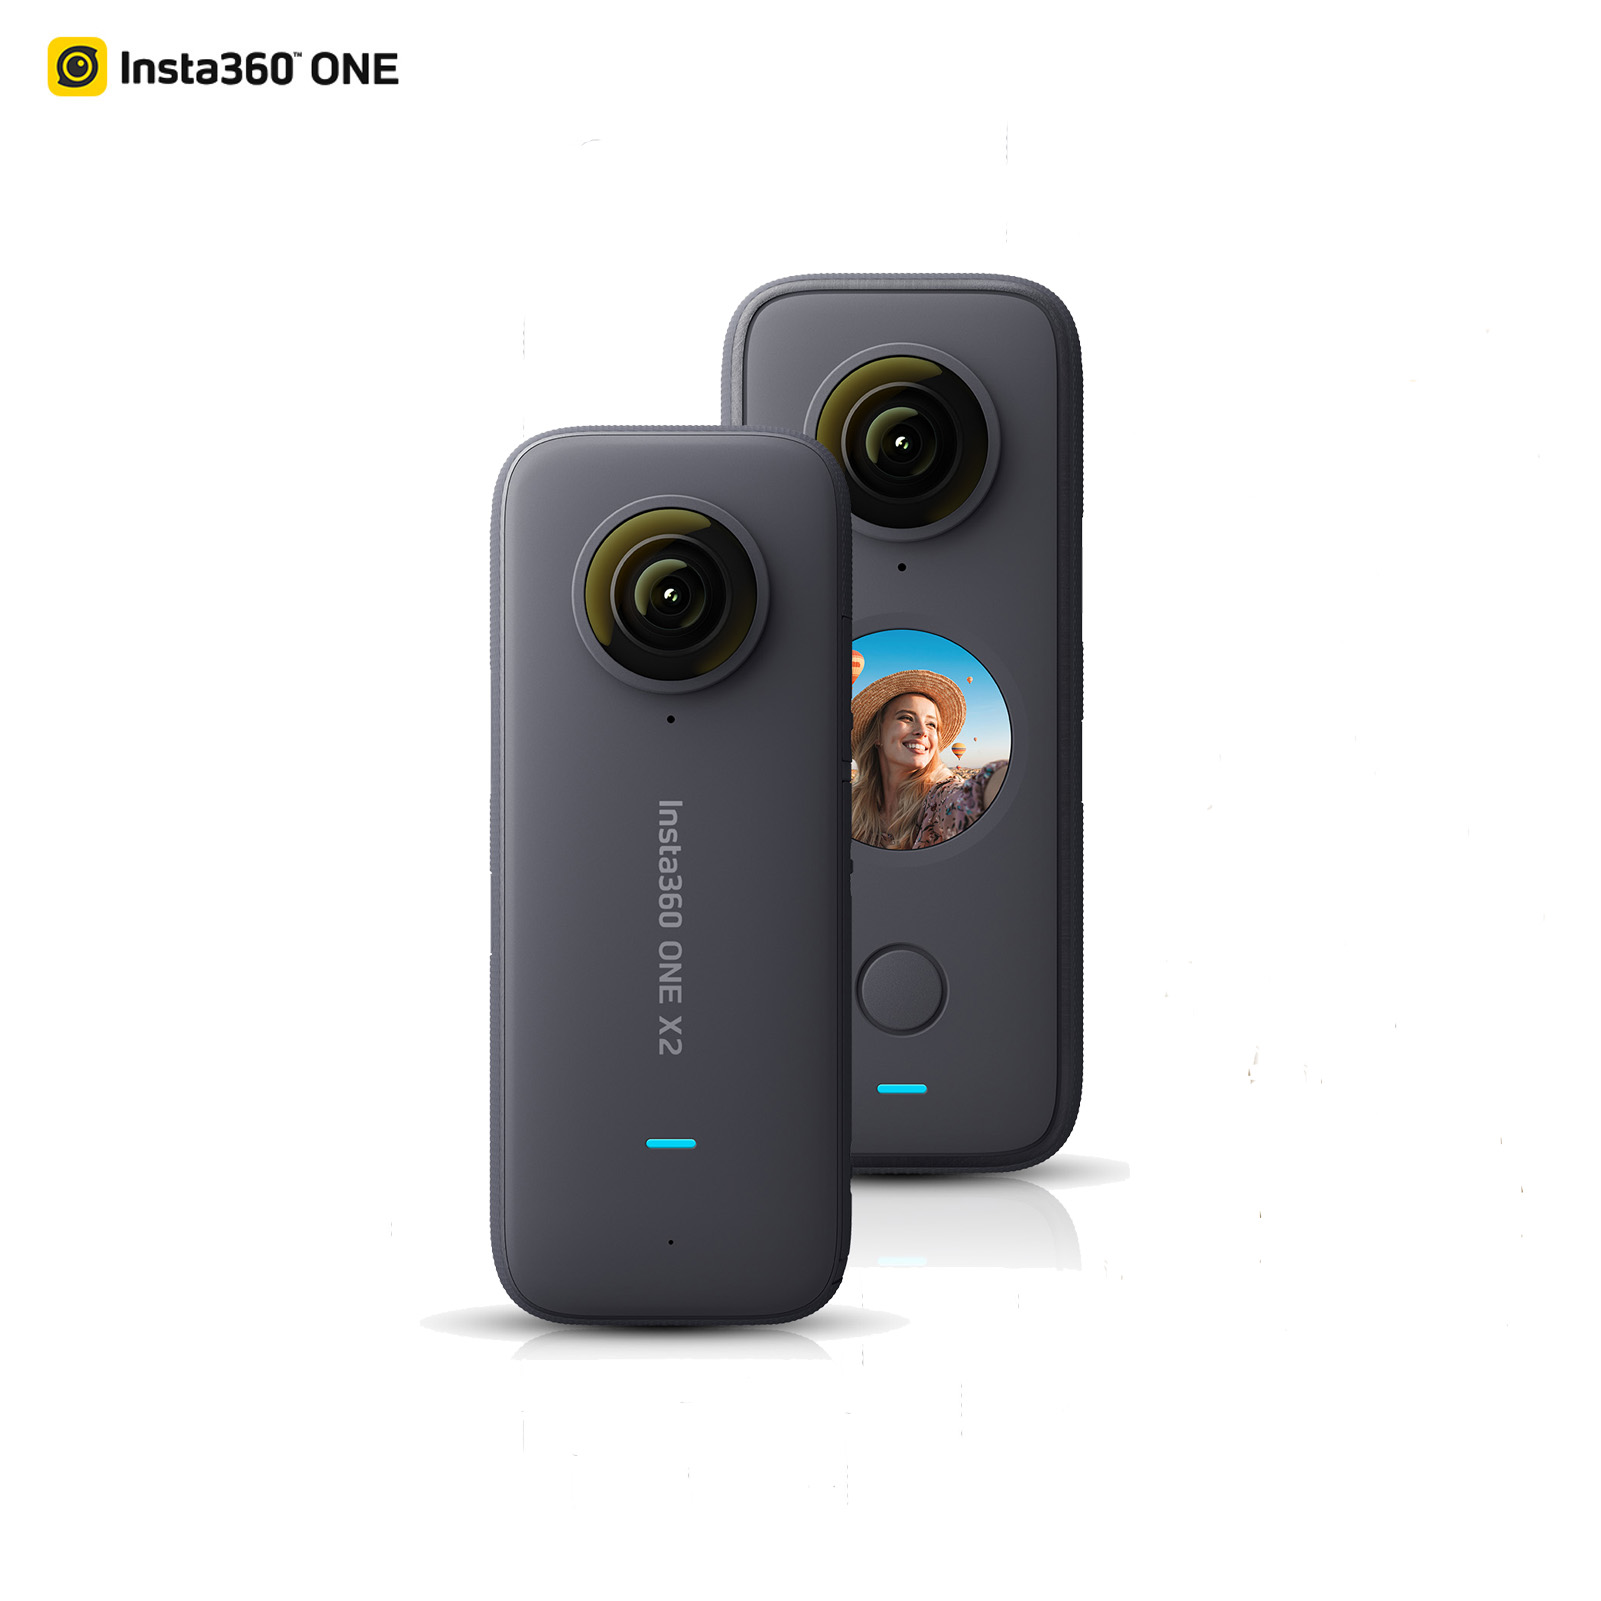 Insta360 ONE X2 Panoramic Action Camera LCD Touch Screen Waterproof Support Bullet Time FlowState Stabilization 360 Camera